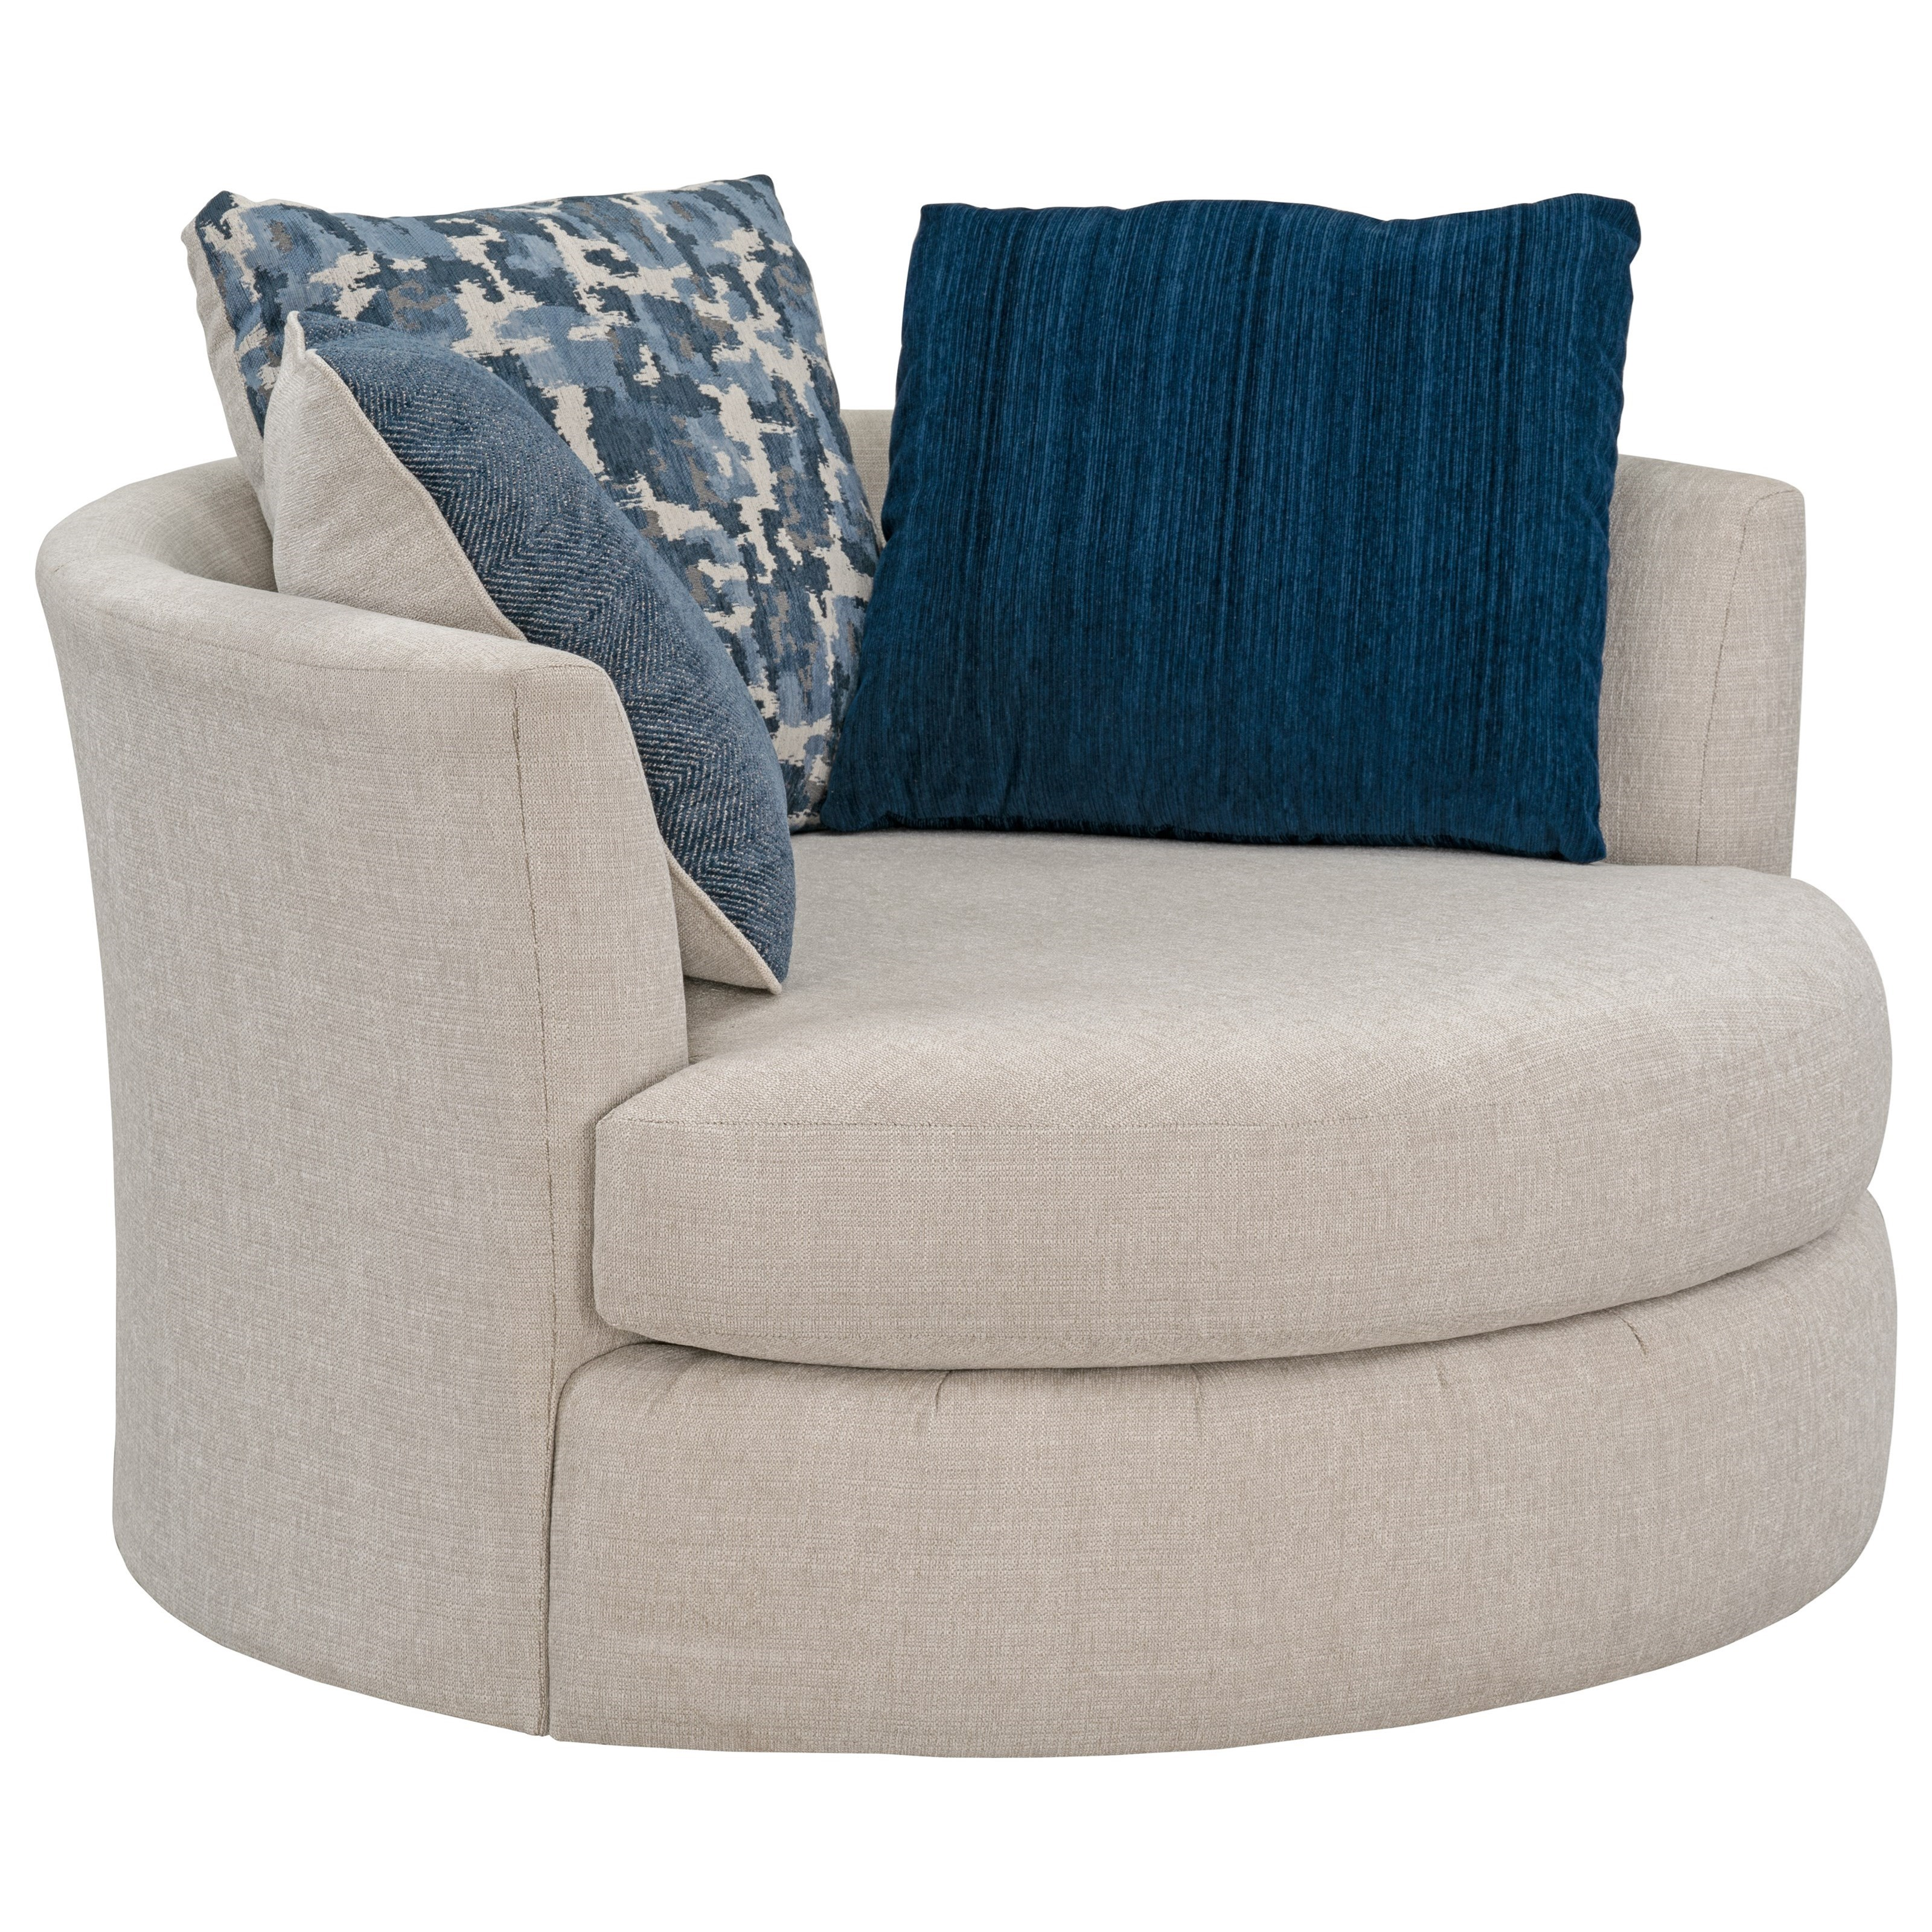 Contemporary Upholstered Swivel Chair with Reversible ...